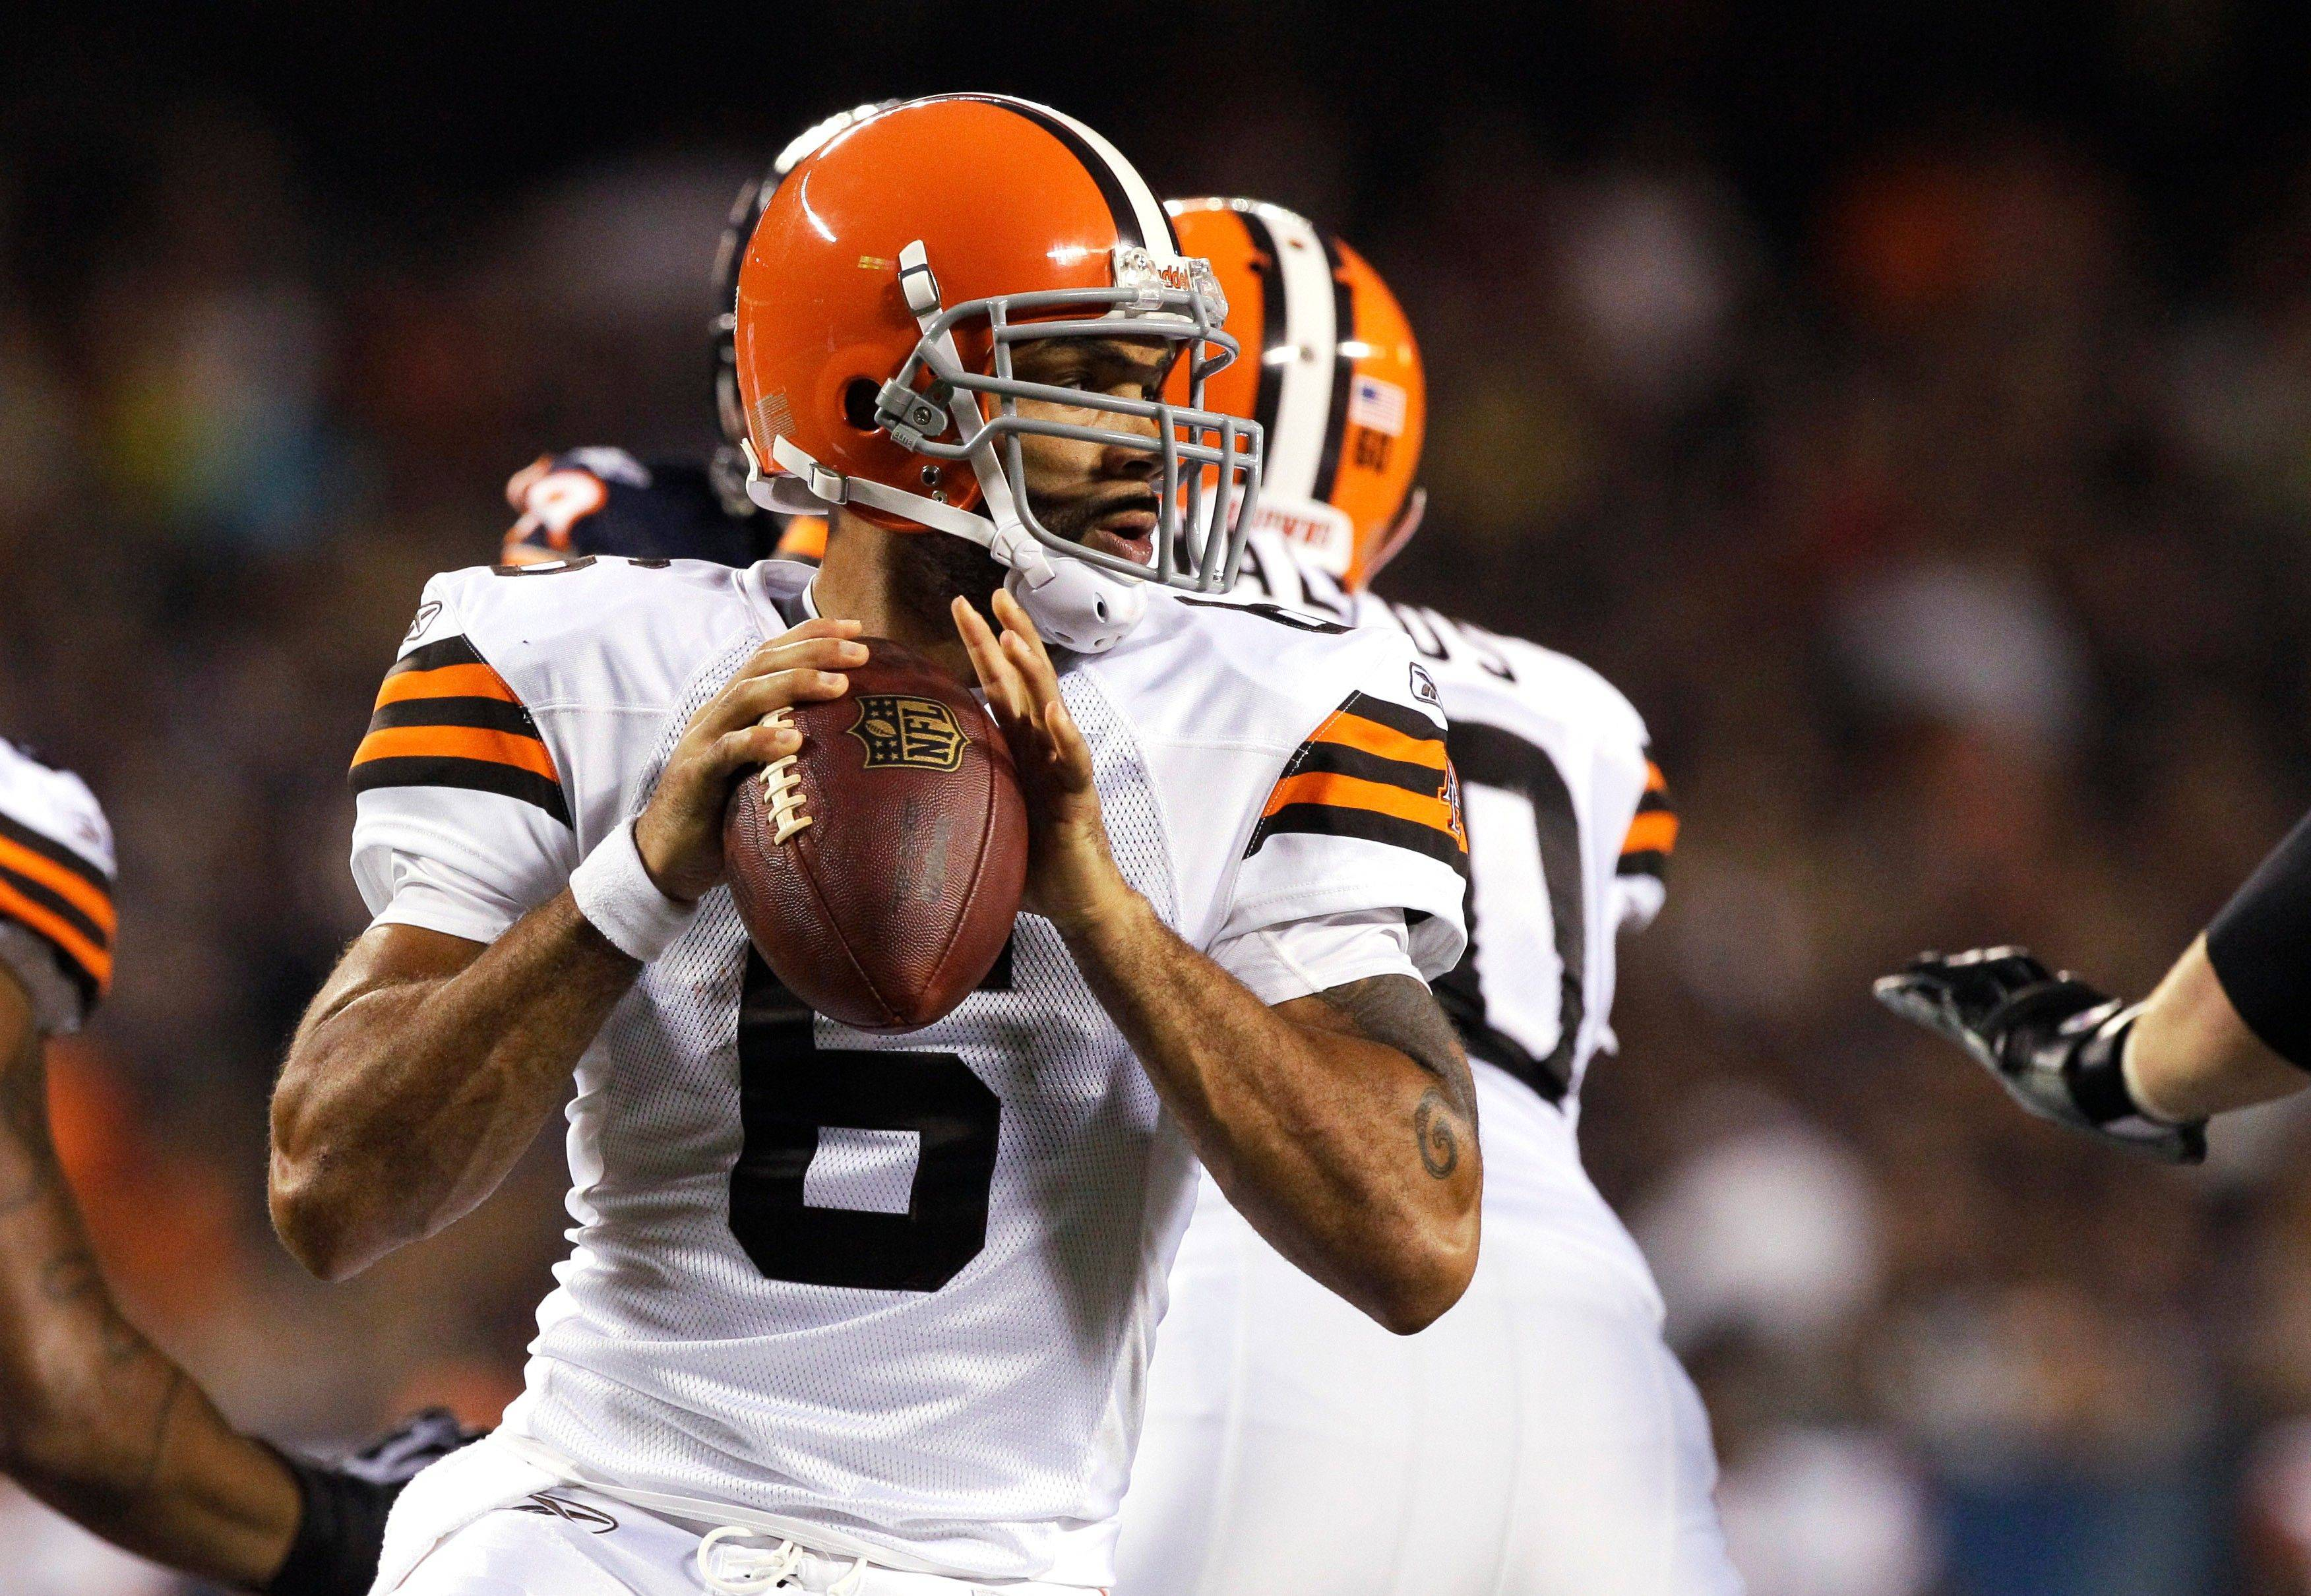 Cleveland Browns quarterback Seneca Wallace drops back to pass against the Chicago Bears in the first half.